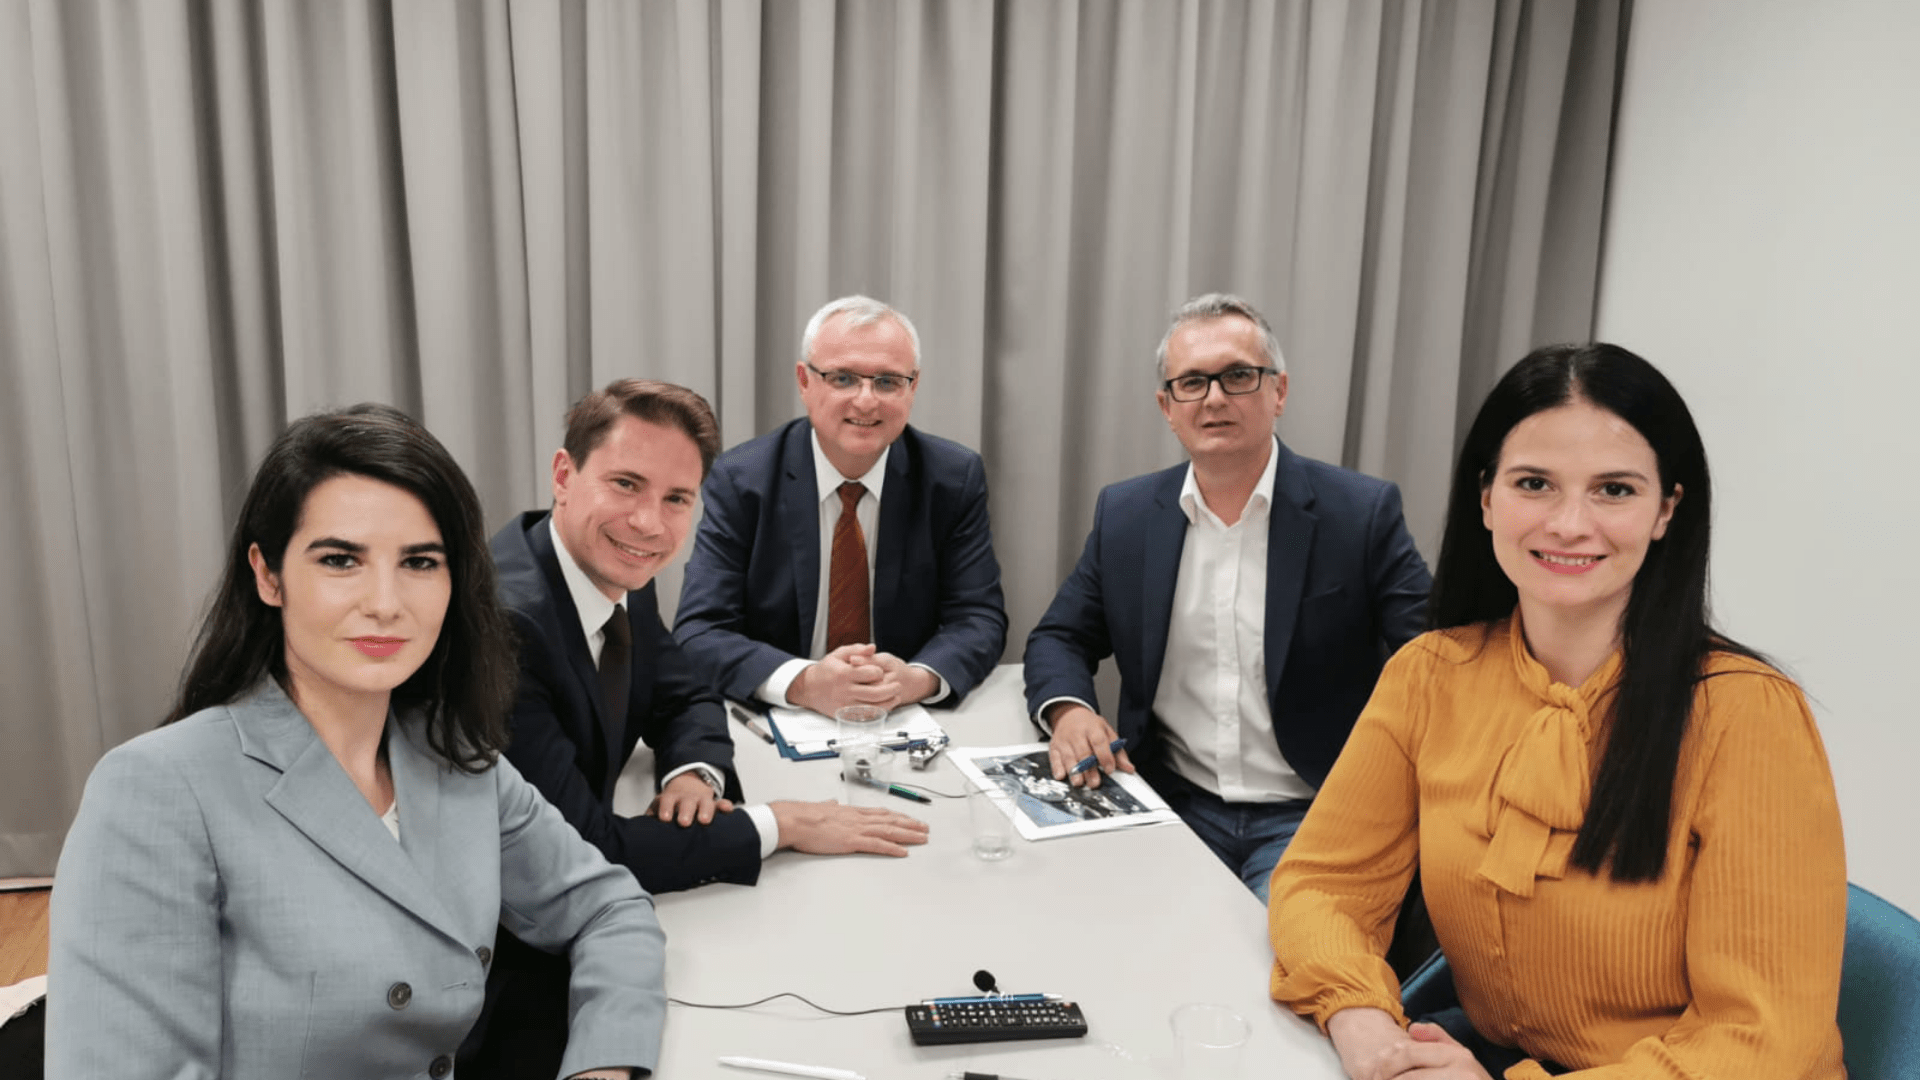 Real Estate an opportunity in Croatia, panel hears